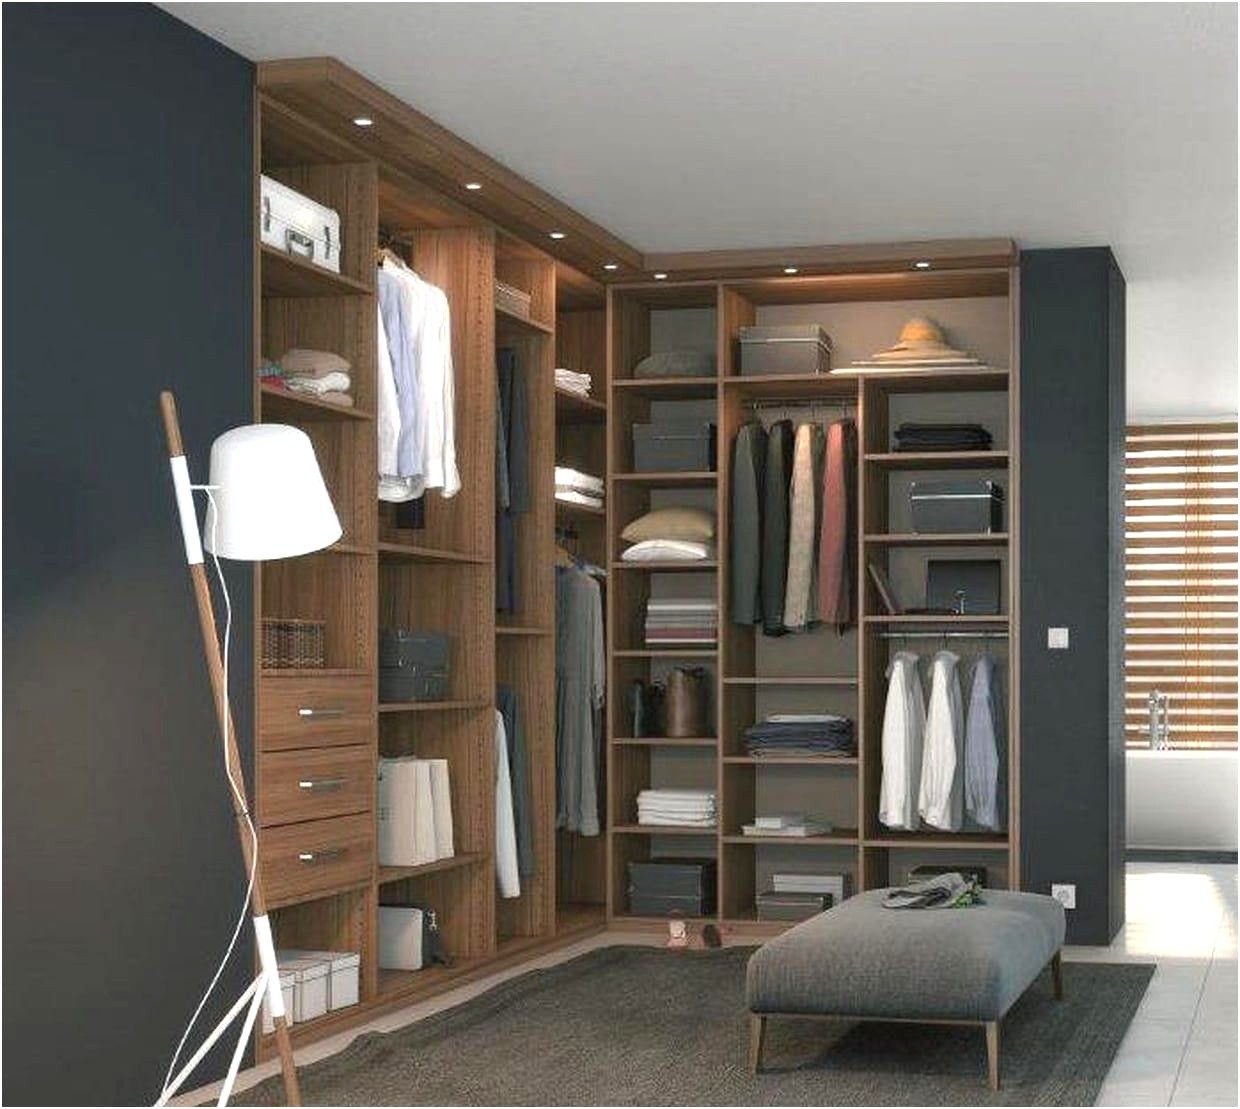 Armoire D Angle Dressing armoire dressing d angle conforama | wohn design, wohnen, design